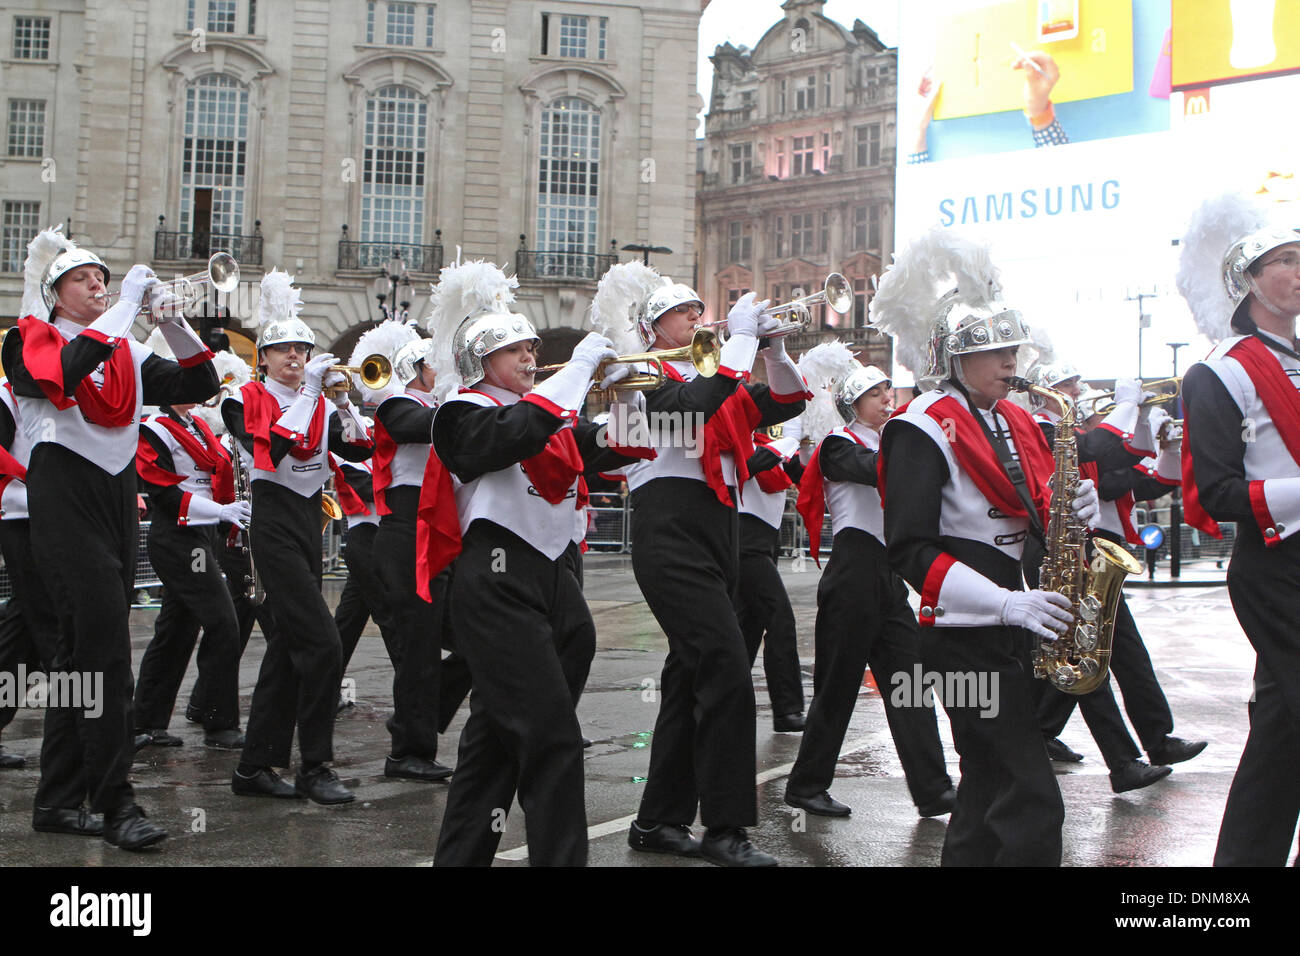 London,UK,1st January 2014,Troy High School marching band at the London's New Year's Day Parade 2014 Credit: Keith Larby/Alamy Live News - Stock Image